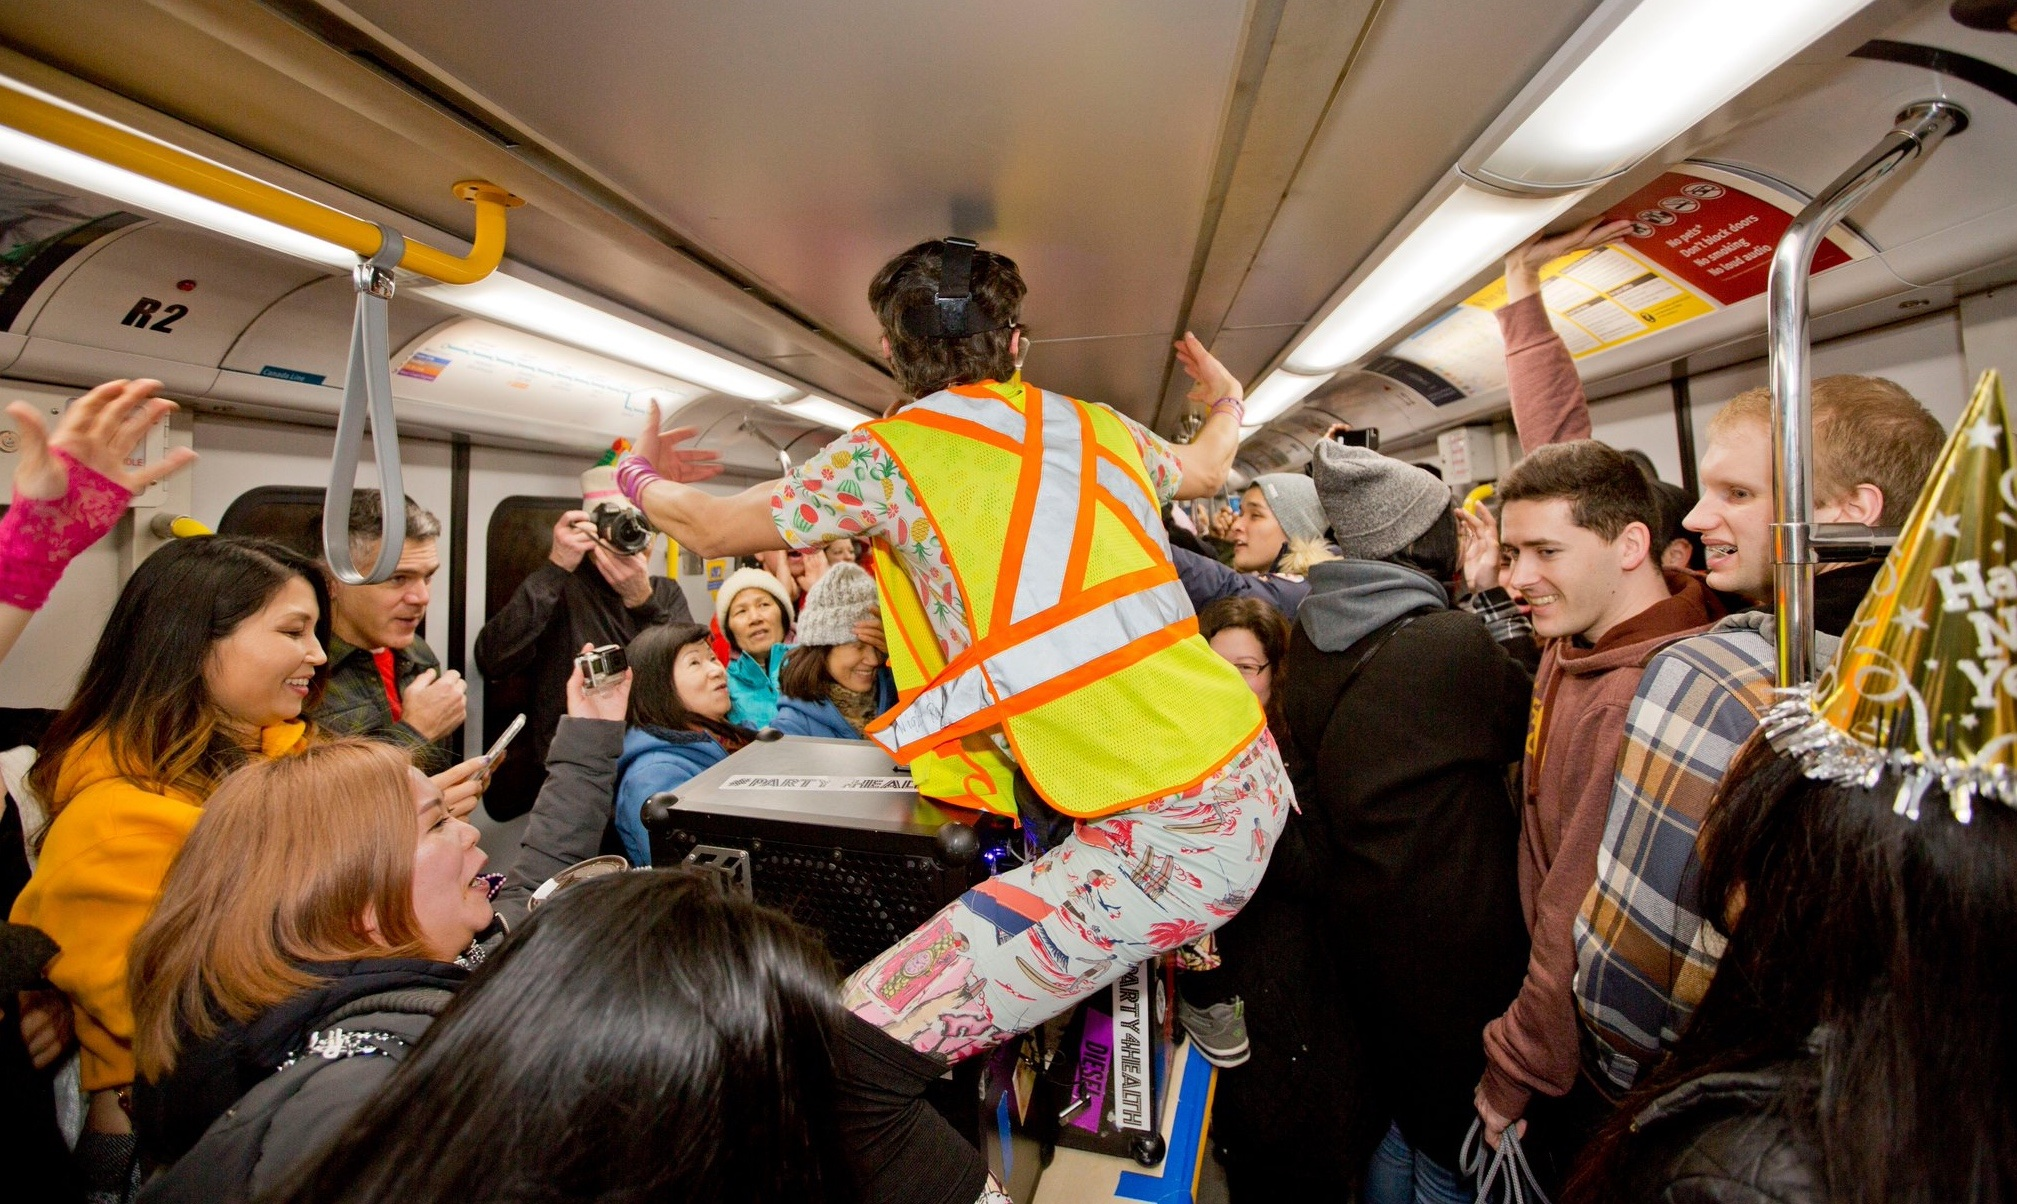 The SkyTrain turned into an epic New Year's Eve dance party again (VIDEOS)